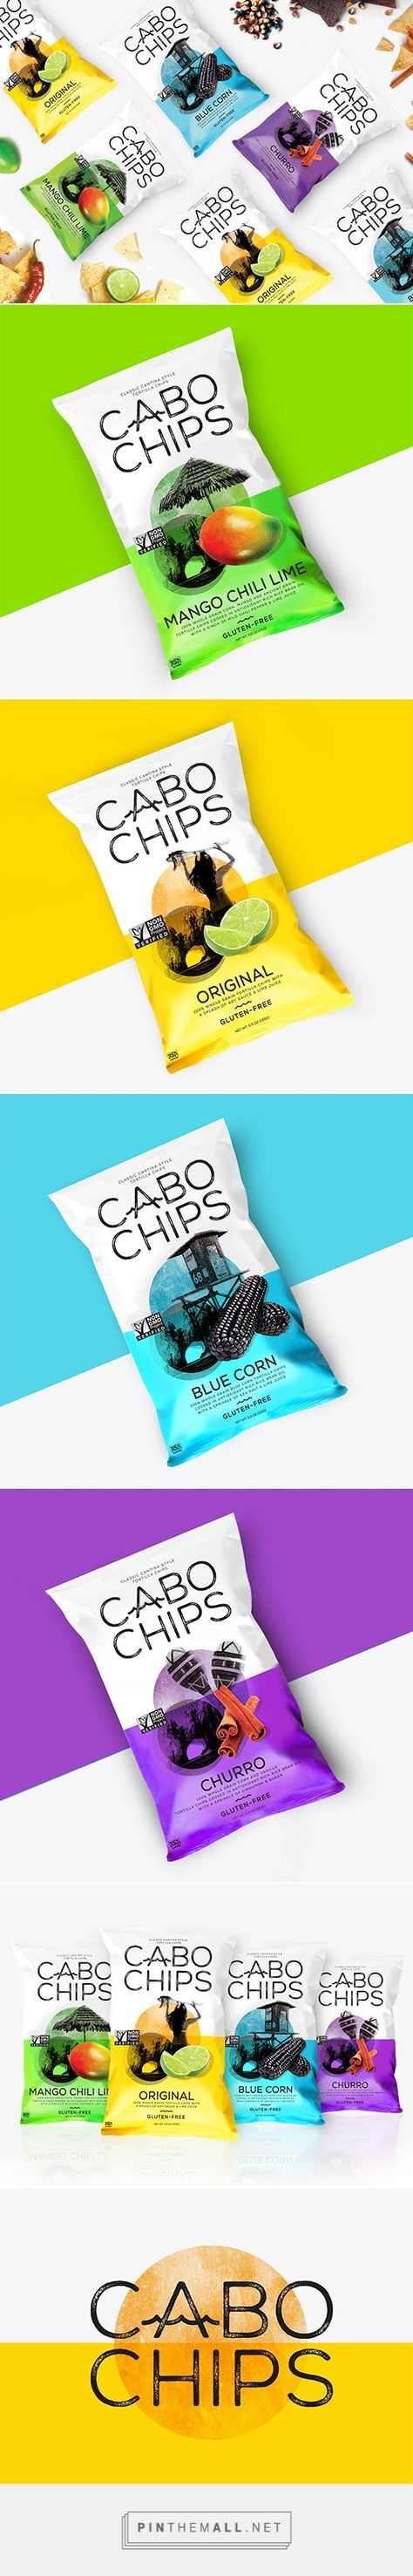 Cabo Chips via Lovely Package by Rook curated by Packaging Diva PD. Tasty expressive chip packaging designs.